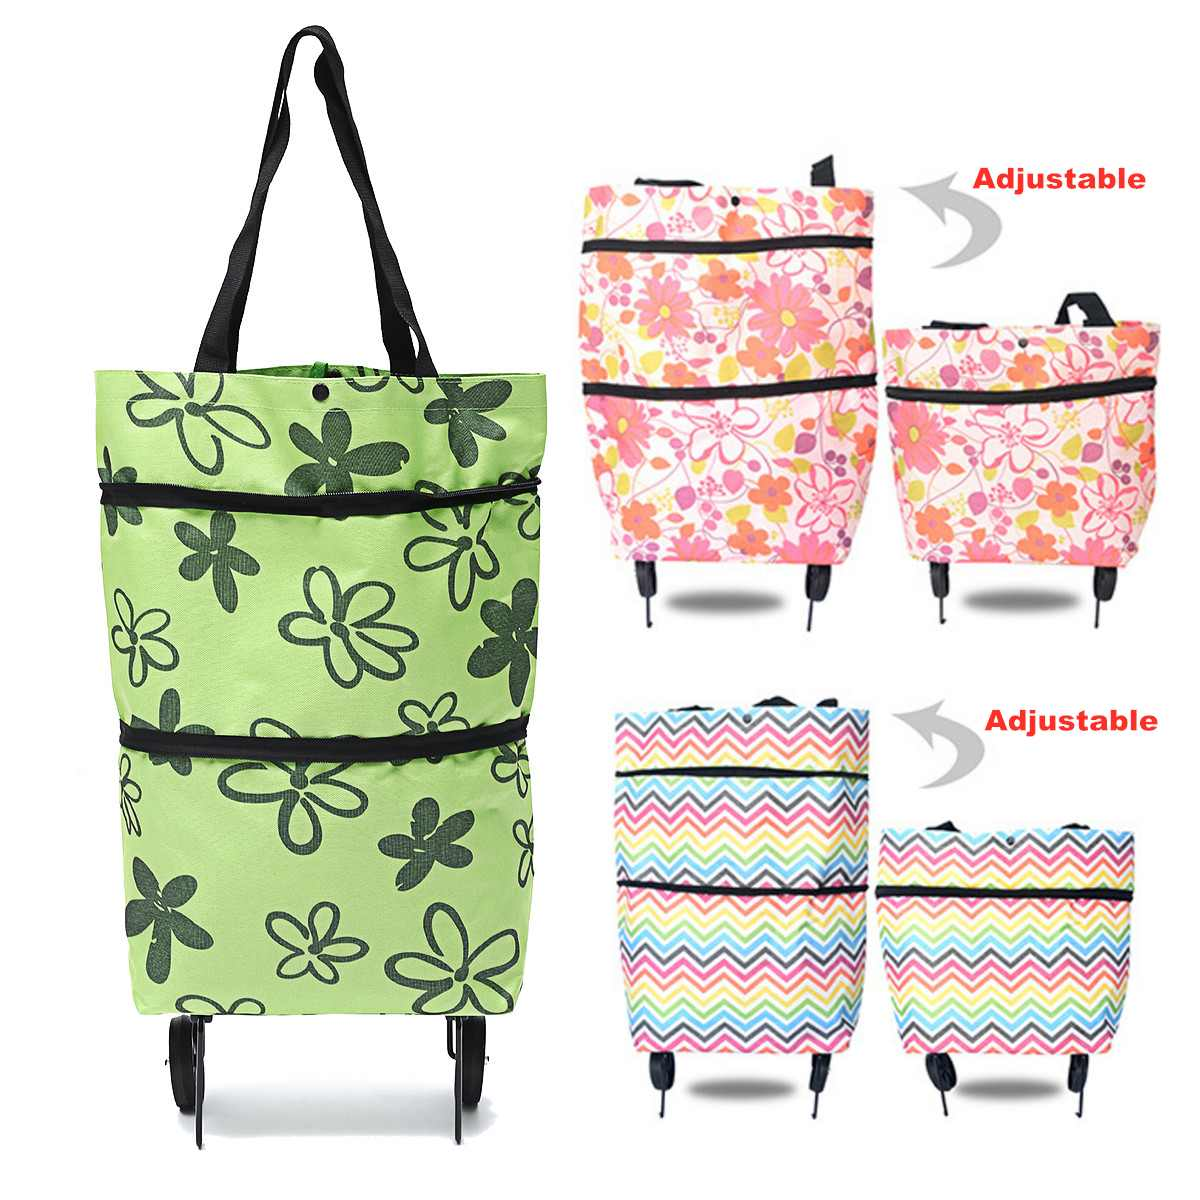 Folding Shopping Cart Laundry Grocery Trolley Handcart Market Bag Portable Shopping Trolley Bag With Wheels Rolling Oxford